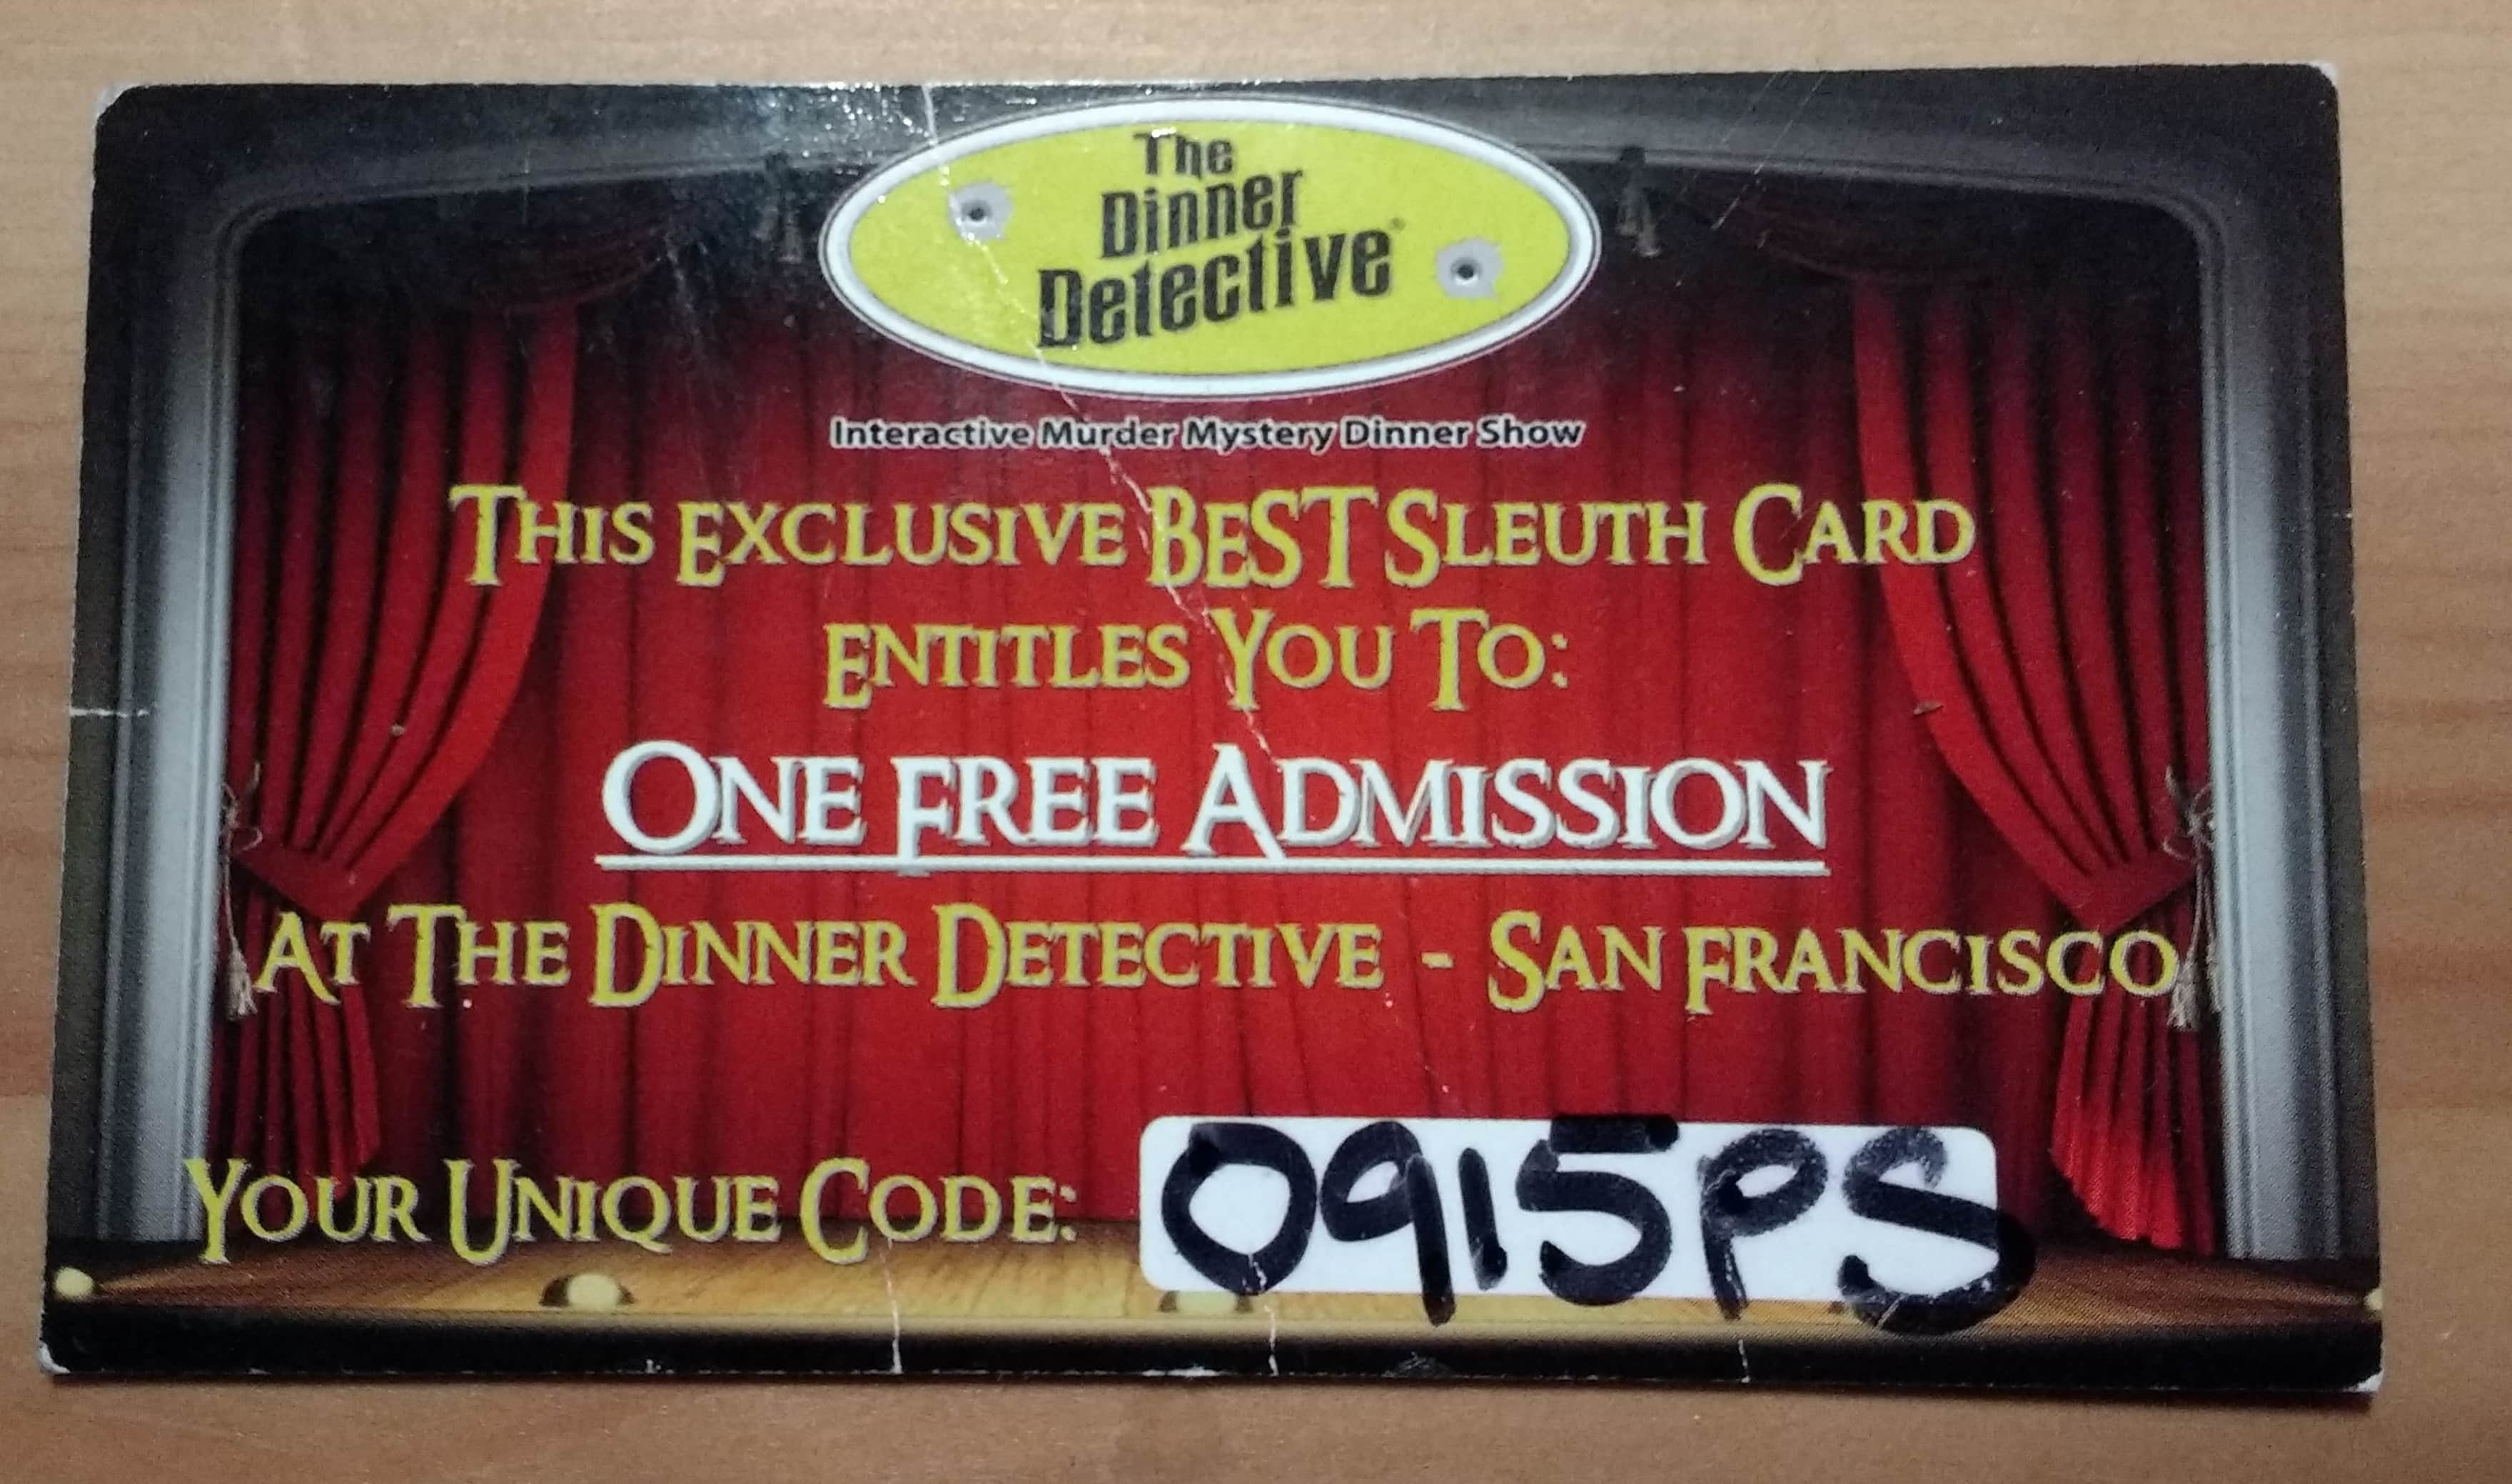 One (1) Free Admission at the Dinner Detective - San Francisco $90